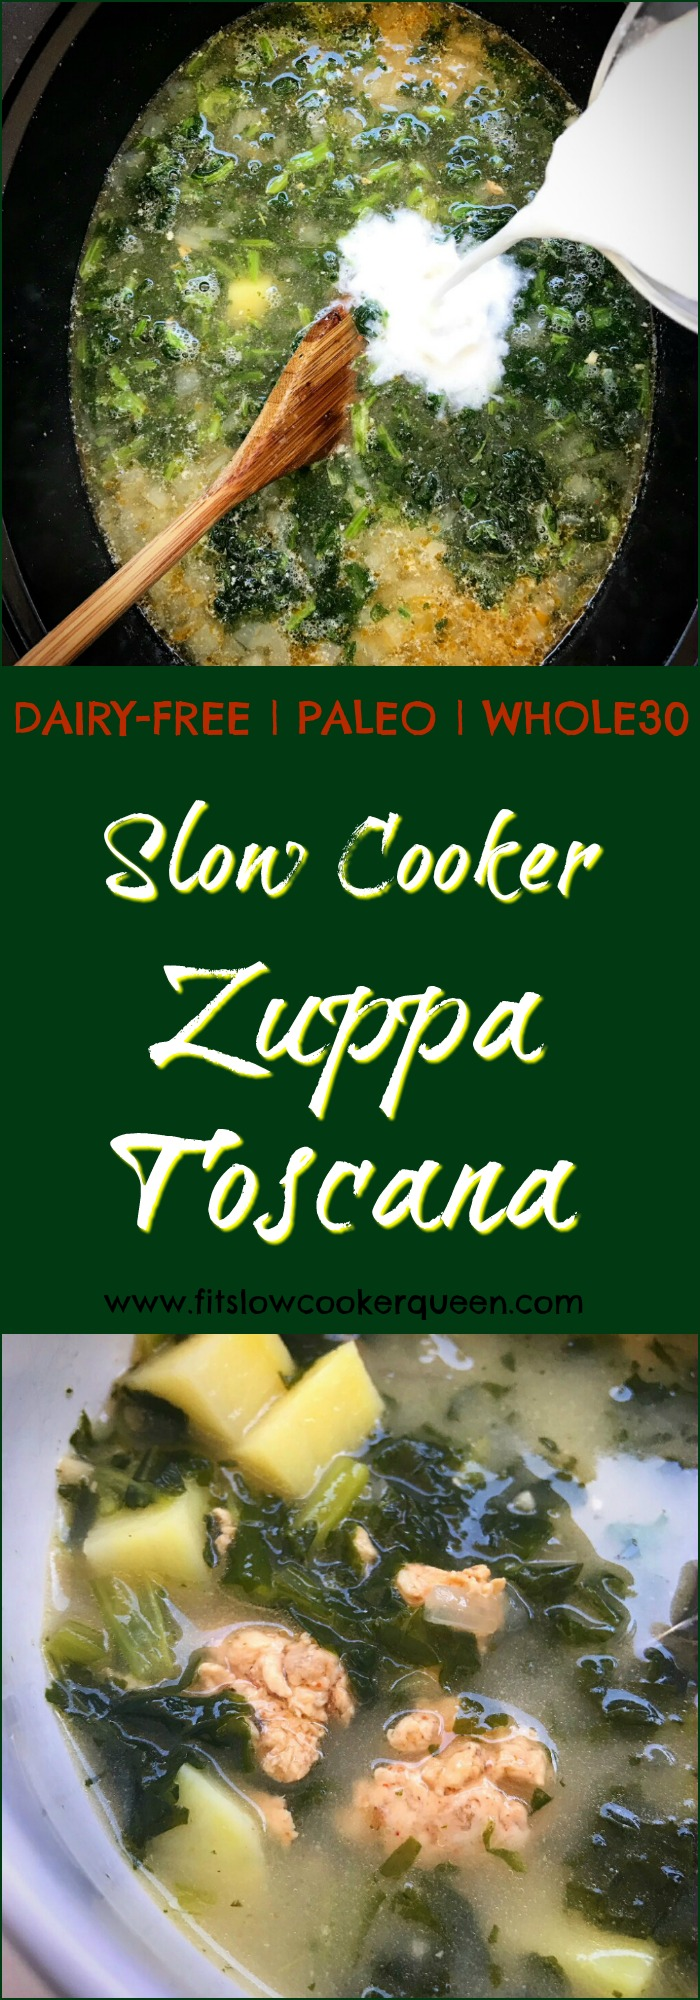 Zuppa toscana is a simple soup using sausage, kale, and potatoes. This cleaned up version is paleo, whole30, and dairy-free and cooks in your slow cooker in just a couple of hours.